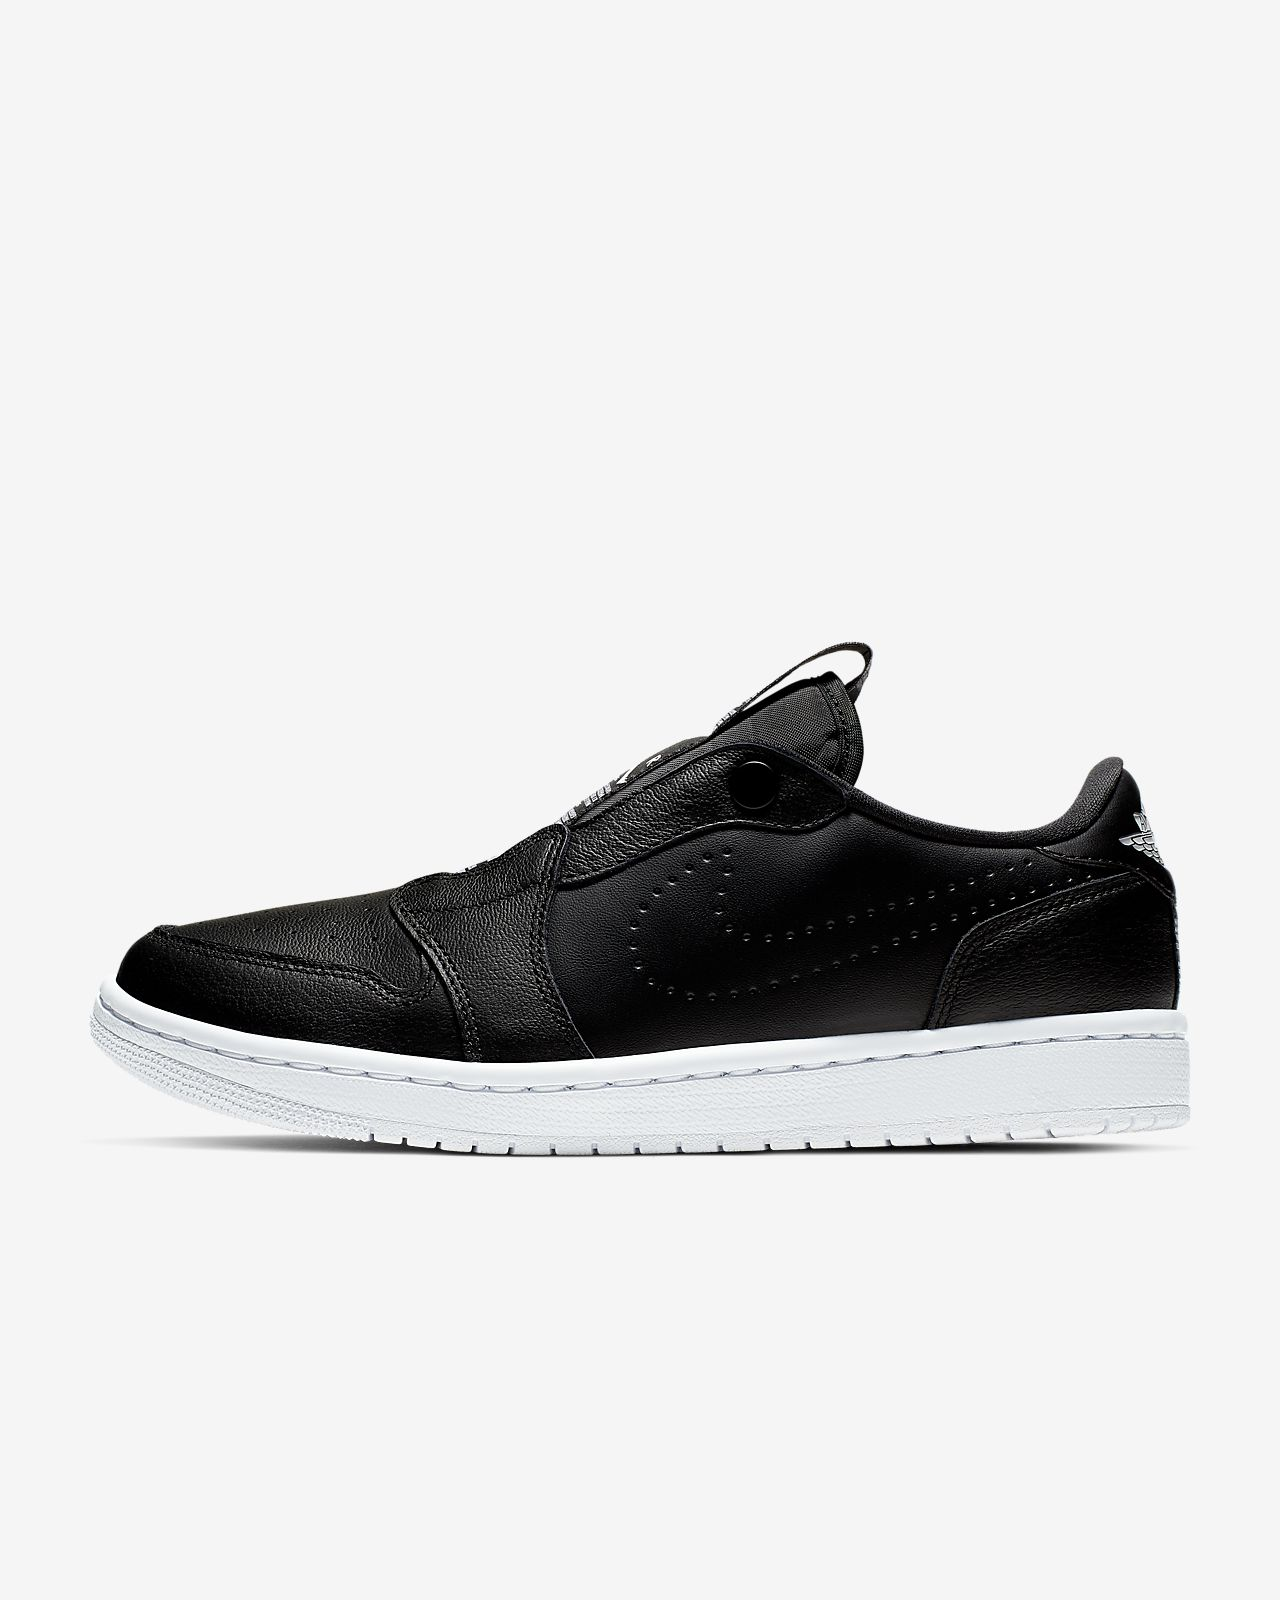 Air Jordan 1 Retro Low Slip Women s Shoe. Nike.com 2a0f545549